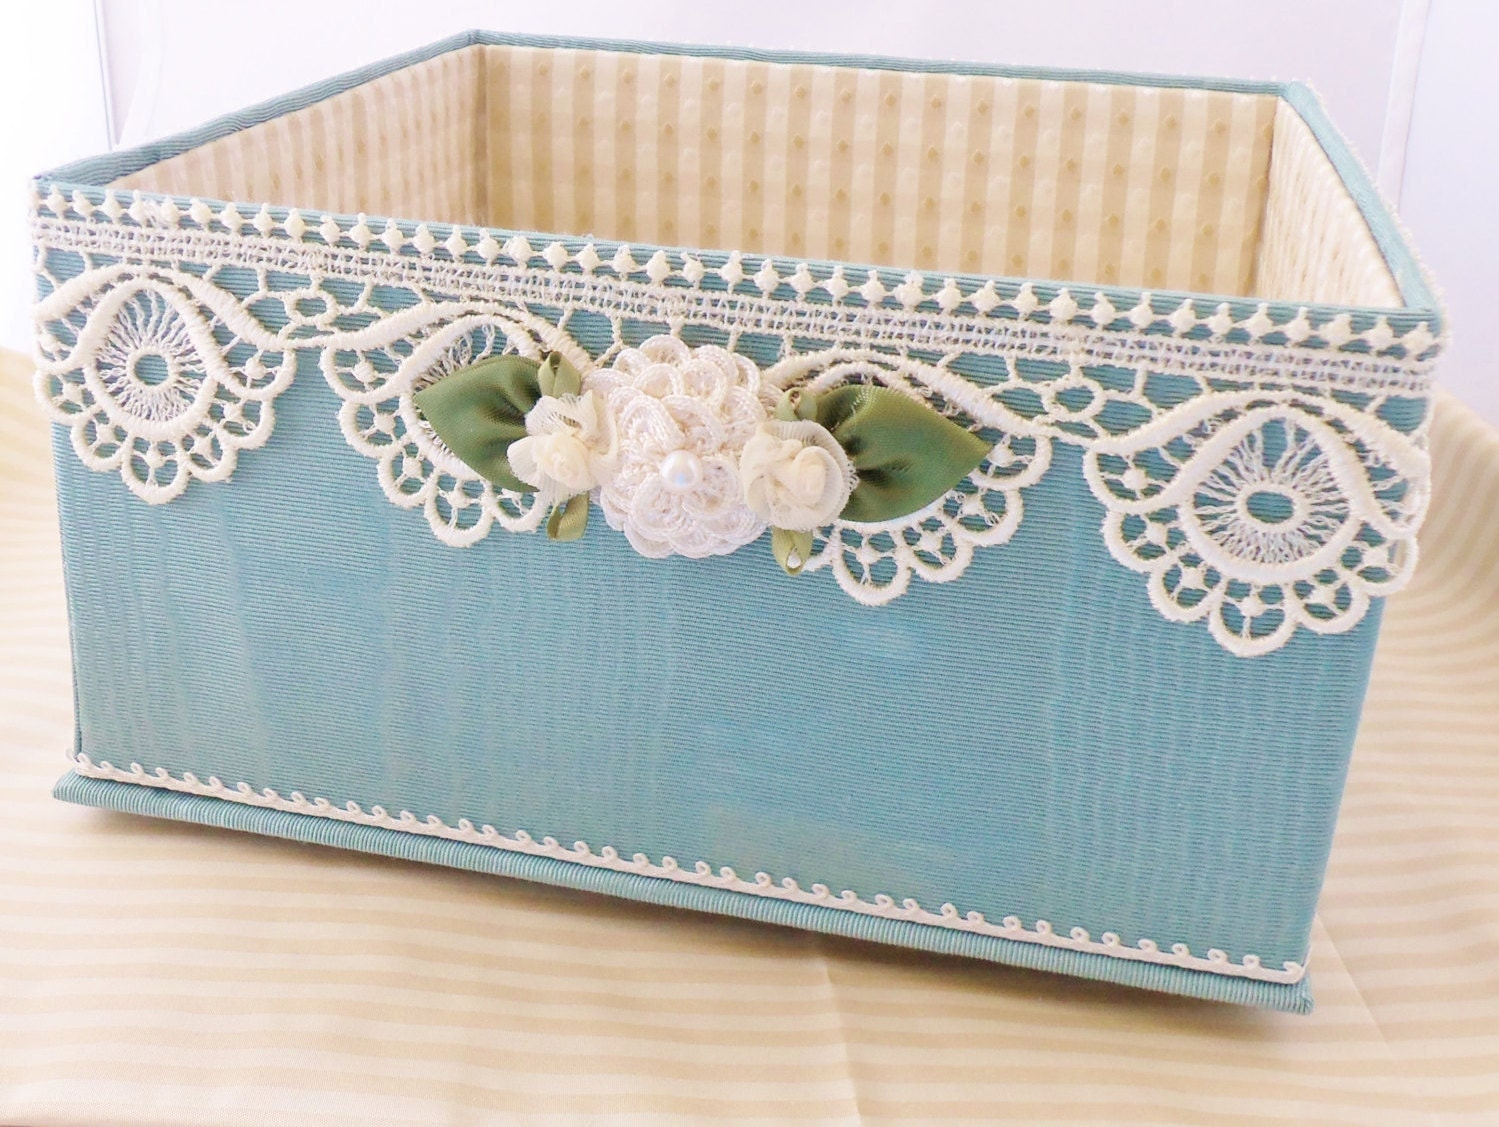 Container For Wedding Gift Envelopes : Chandeliers & Pendant Lights